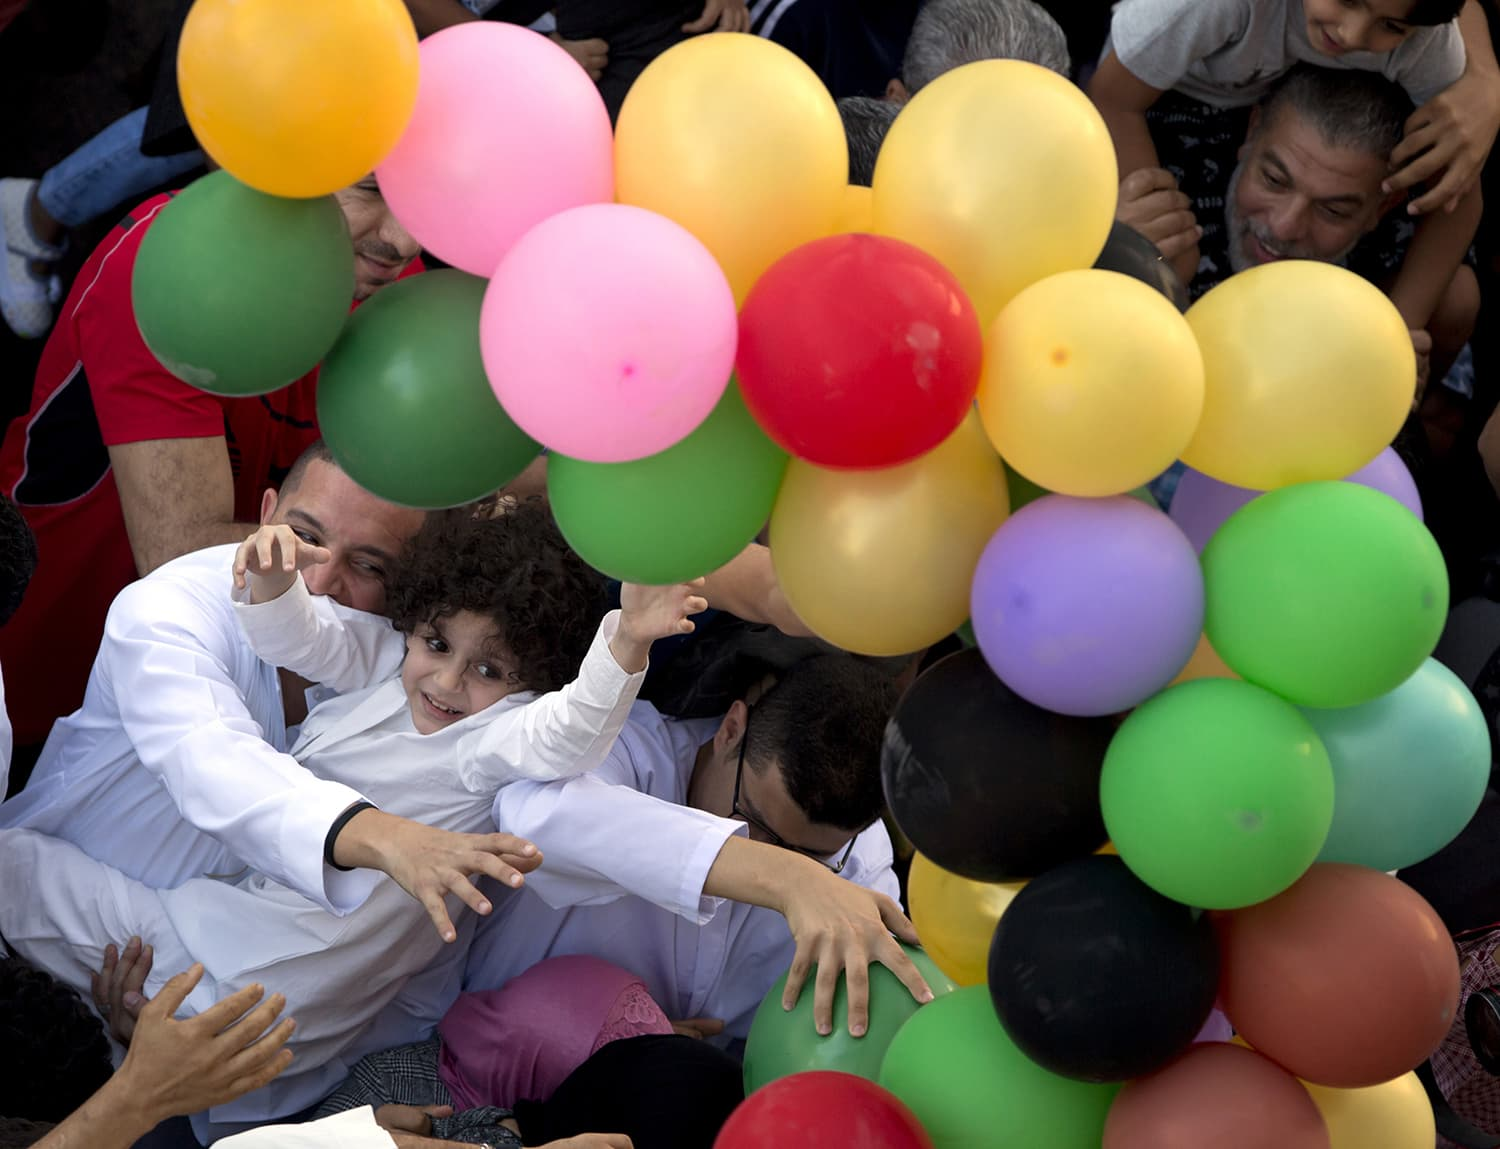 Muslims try to catch balloons distributed for free after Eid prayers outside al-Seddik mosque in Cairo, Egypt. — AP